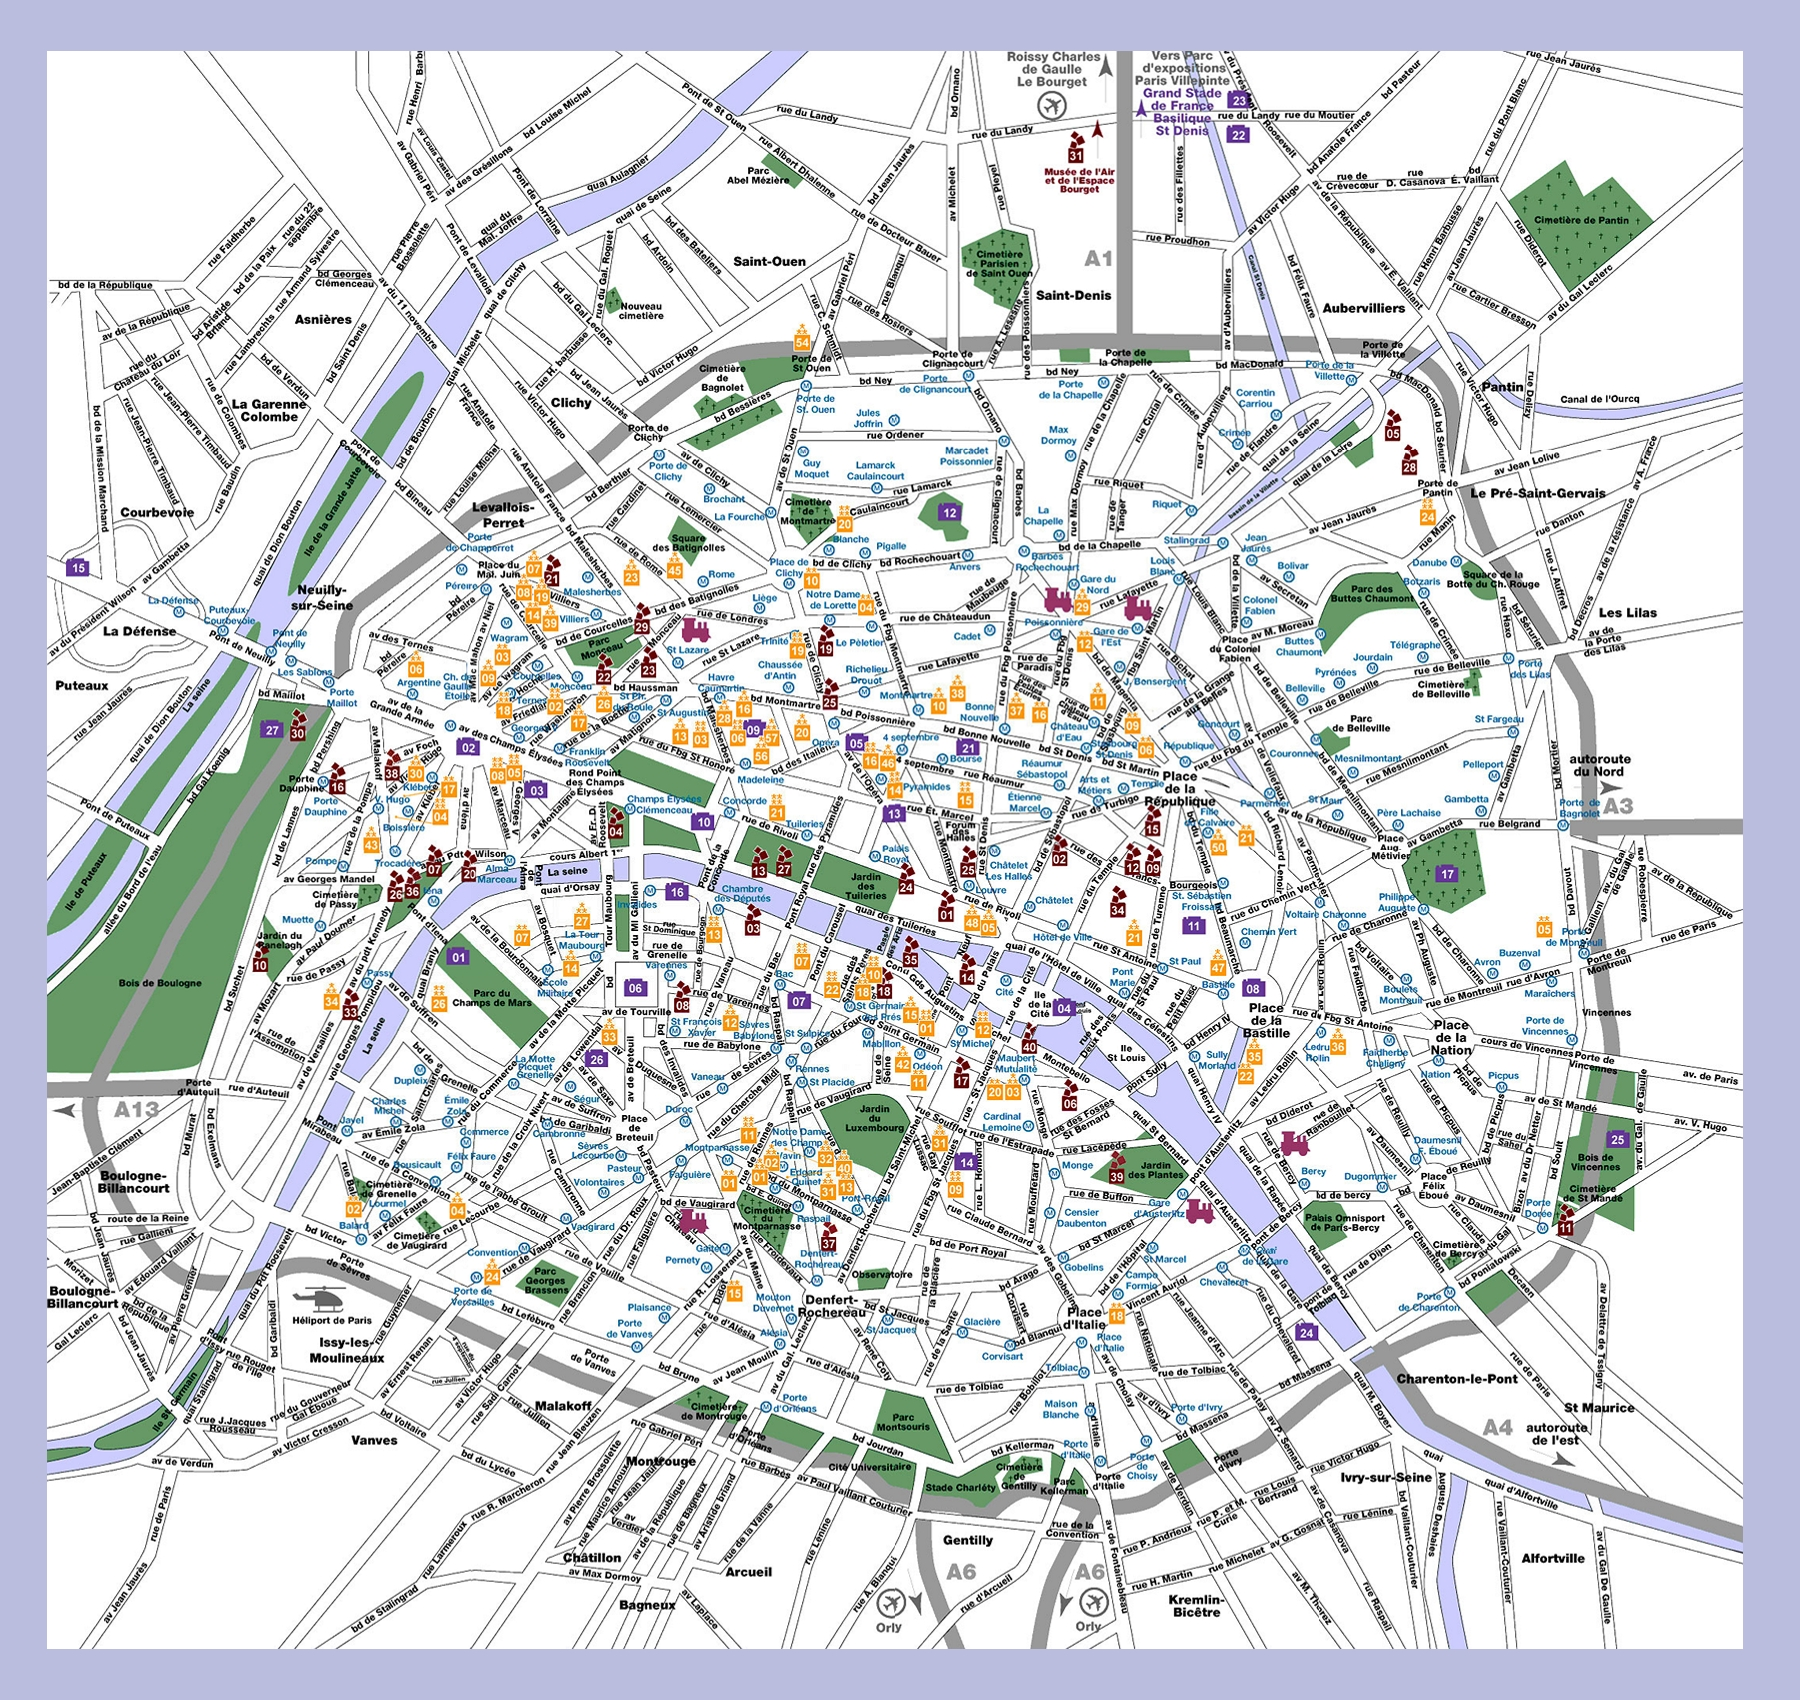 Map Of Landmarks In Paris Paris Tourist Attractions Map City Map – Map Of Central Paris Tourist